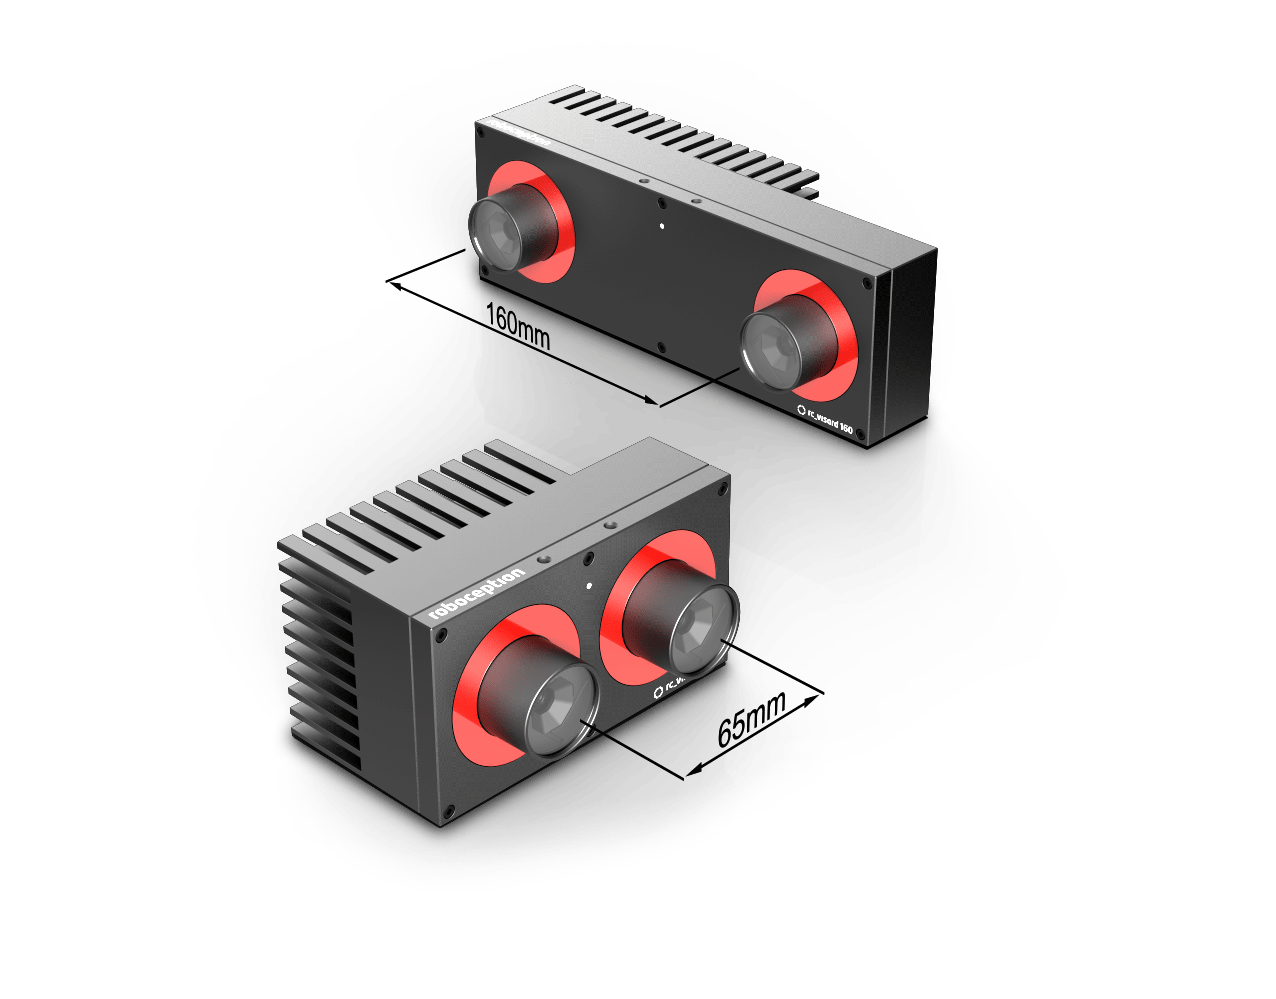 rc_visard is a powerful and high performance 3D sensor for